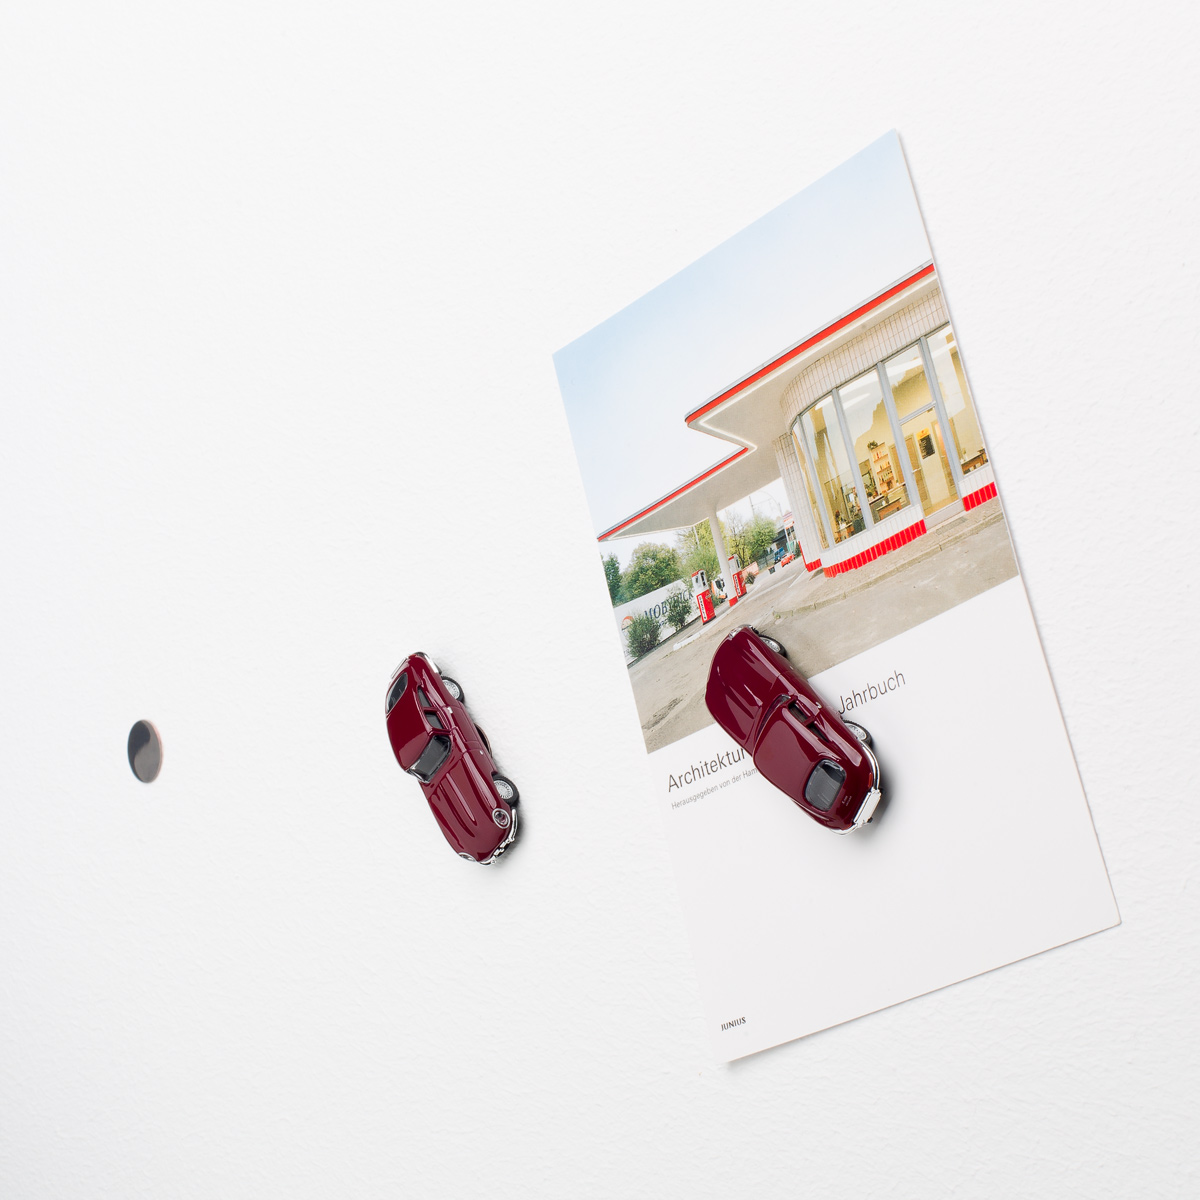 Jaguar E-Type with Neodym magnet used as fridge magnet | The Design Gift Shop